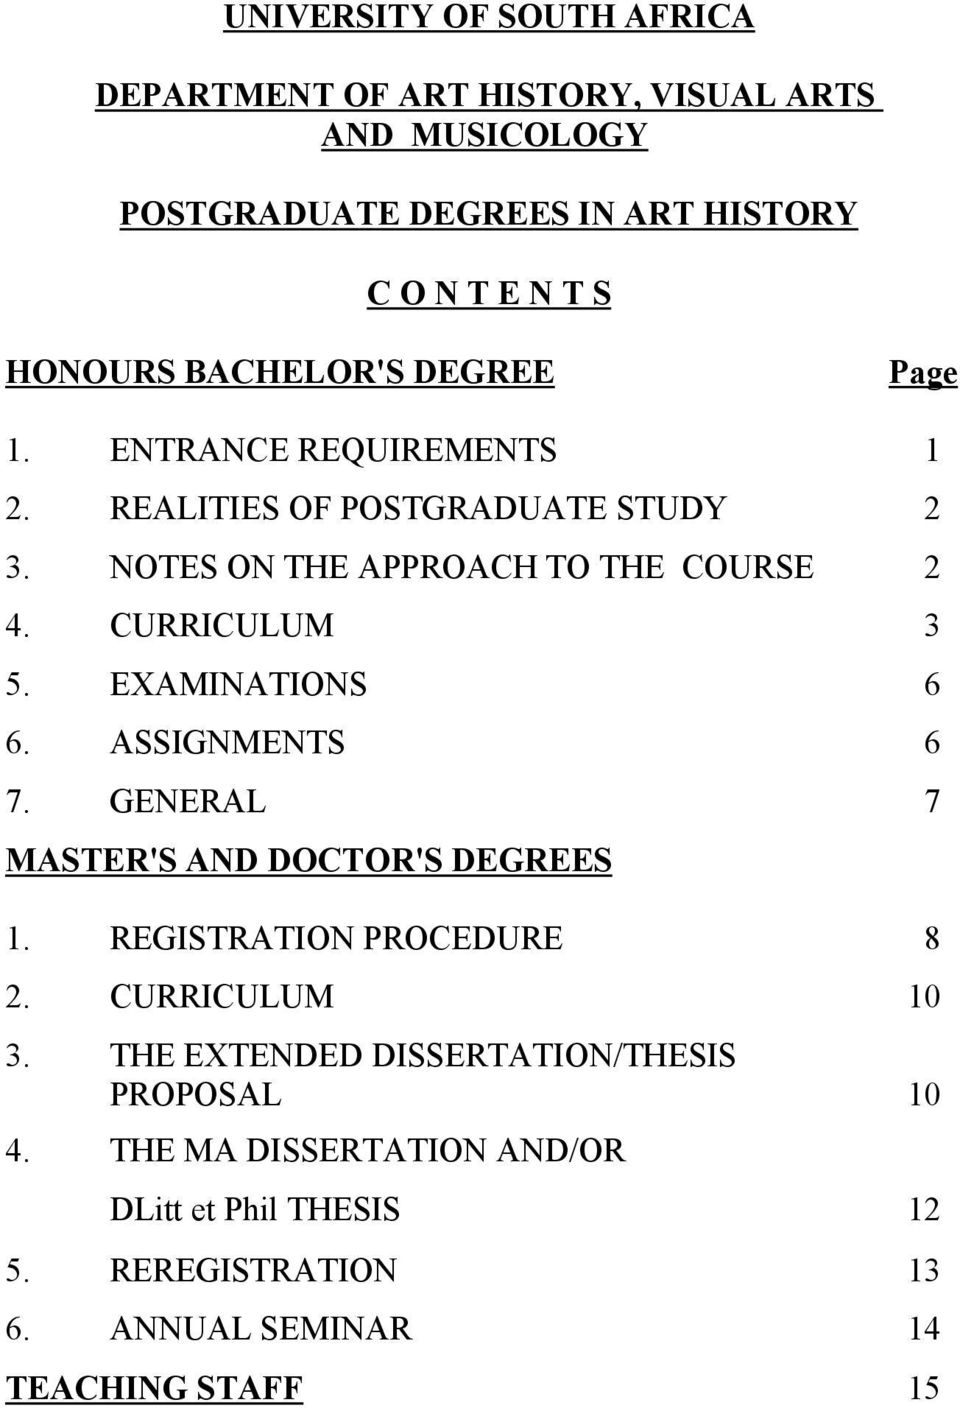 CURRICULUM 3 5. EXAMINATIONS 6 6. ASSIGNMENTS 6 7. GENERAL 7 MASTER'S AND DOCTOR'S DEGREES 1. REGISTRATION PROCEDURE 8 2. CURRICULUM 10 3.